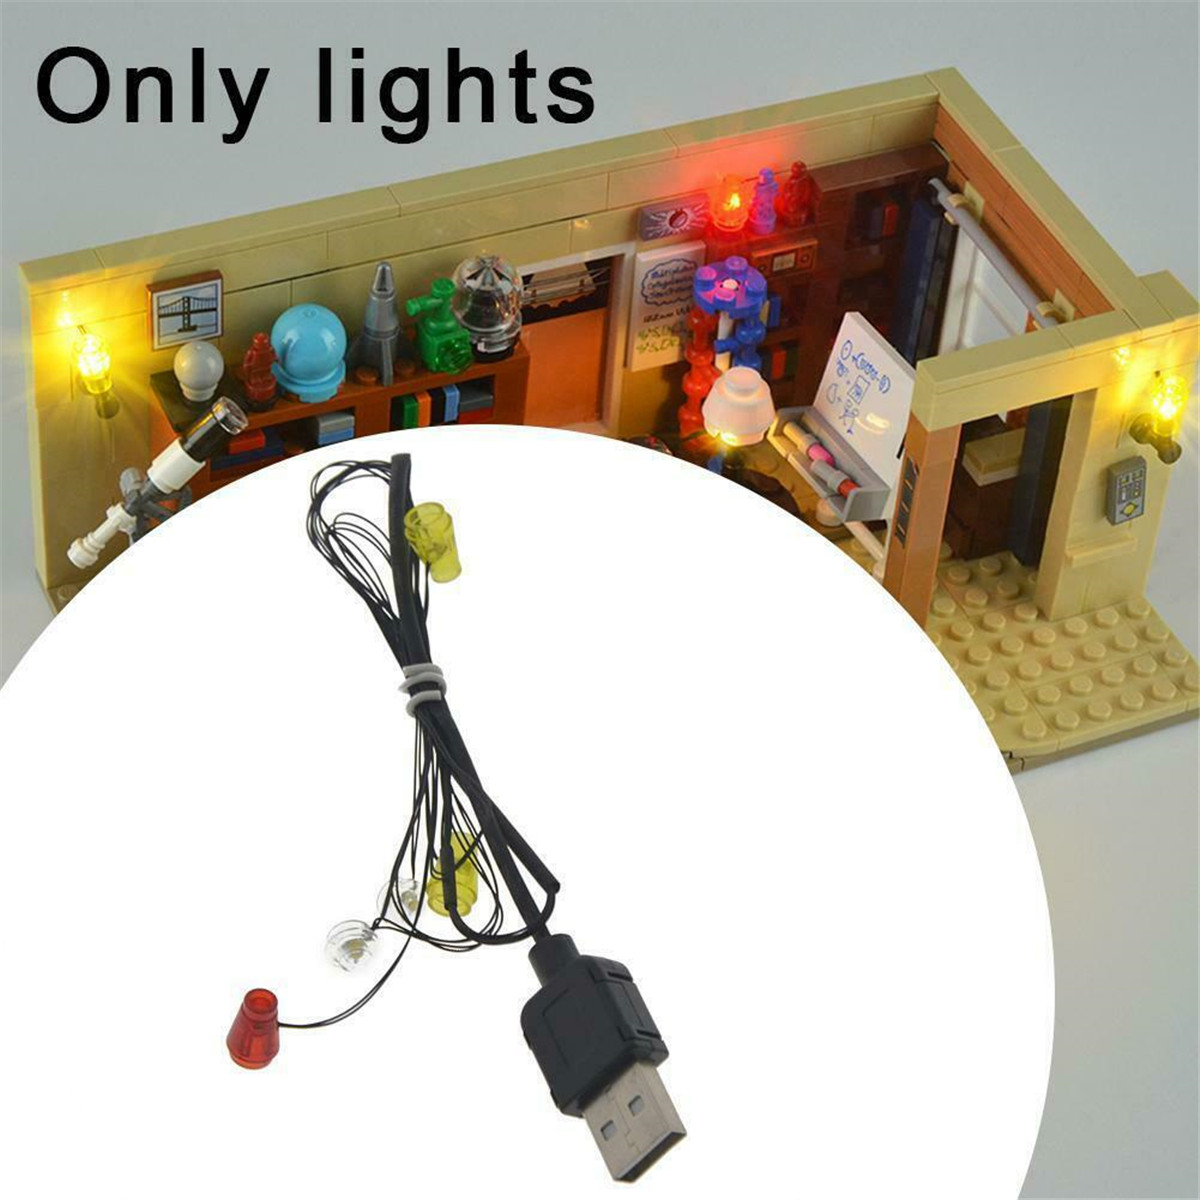 DIY LED Lighting Kit for LEGO 21302 Classic American Drama Friends Central Park Cafe Group Bricks Toys Gifts image